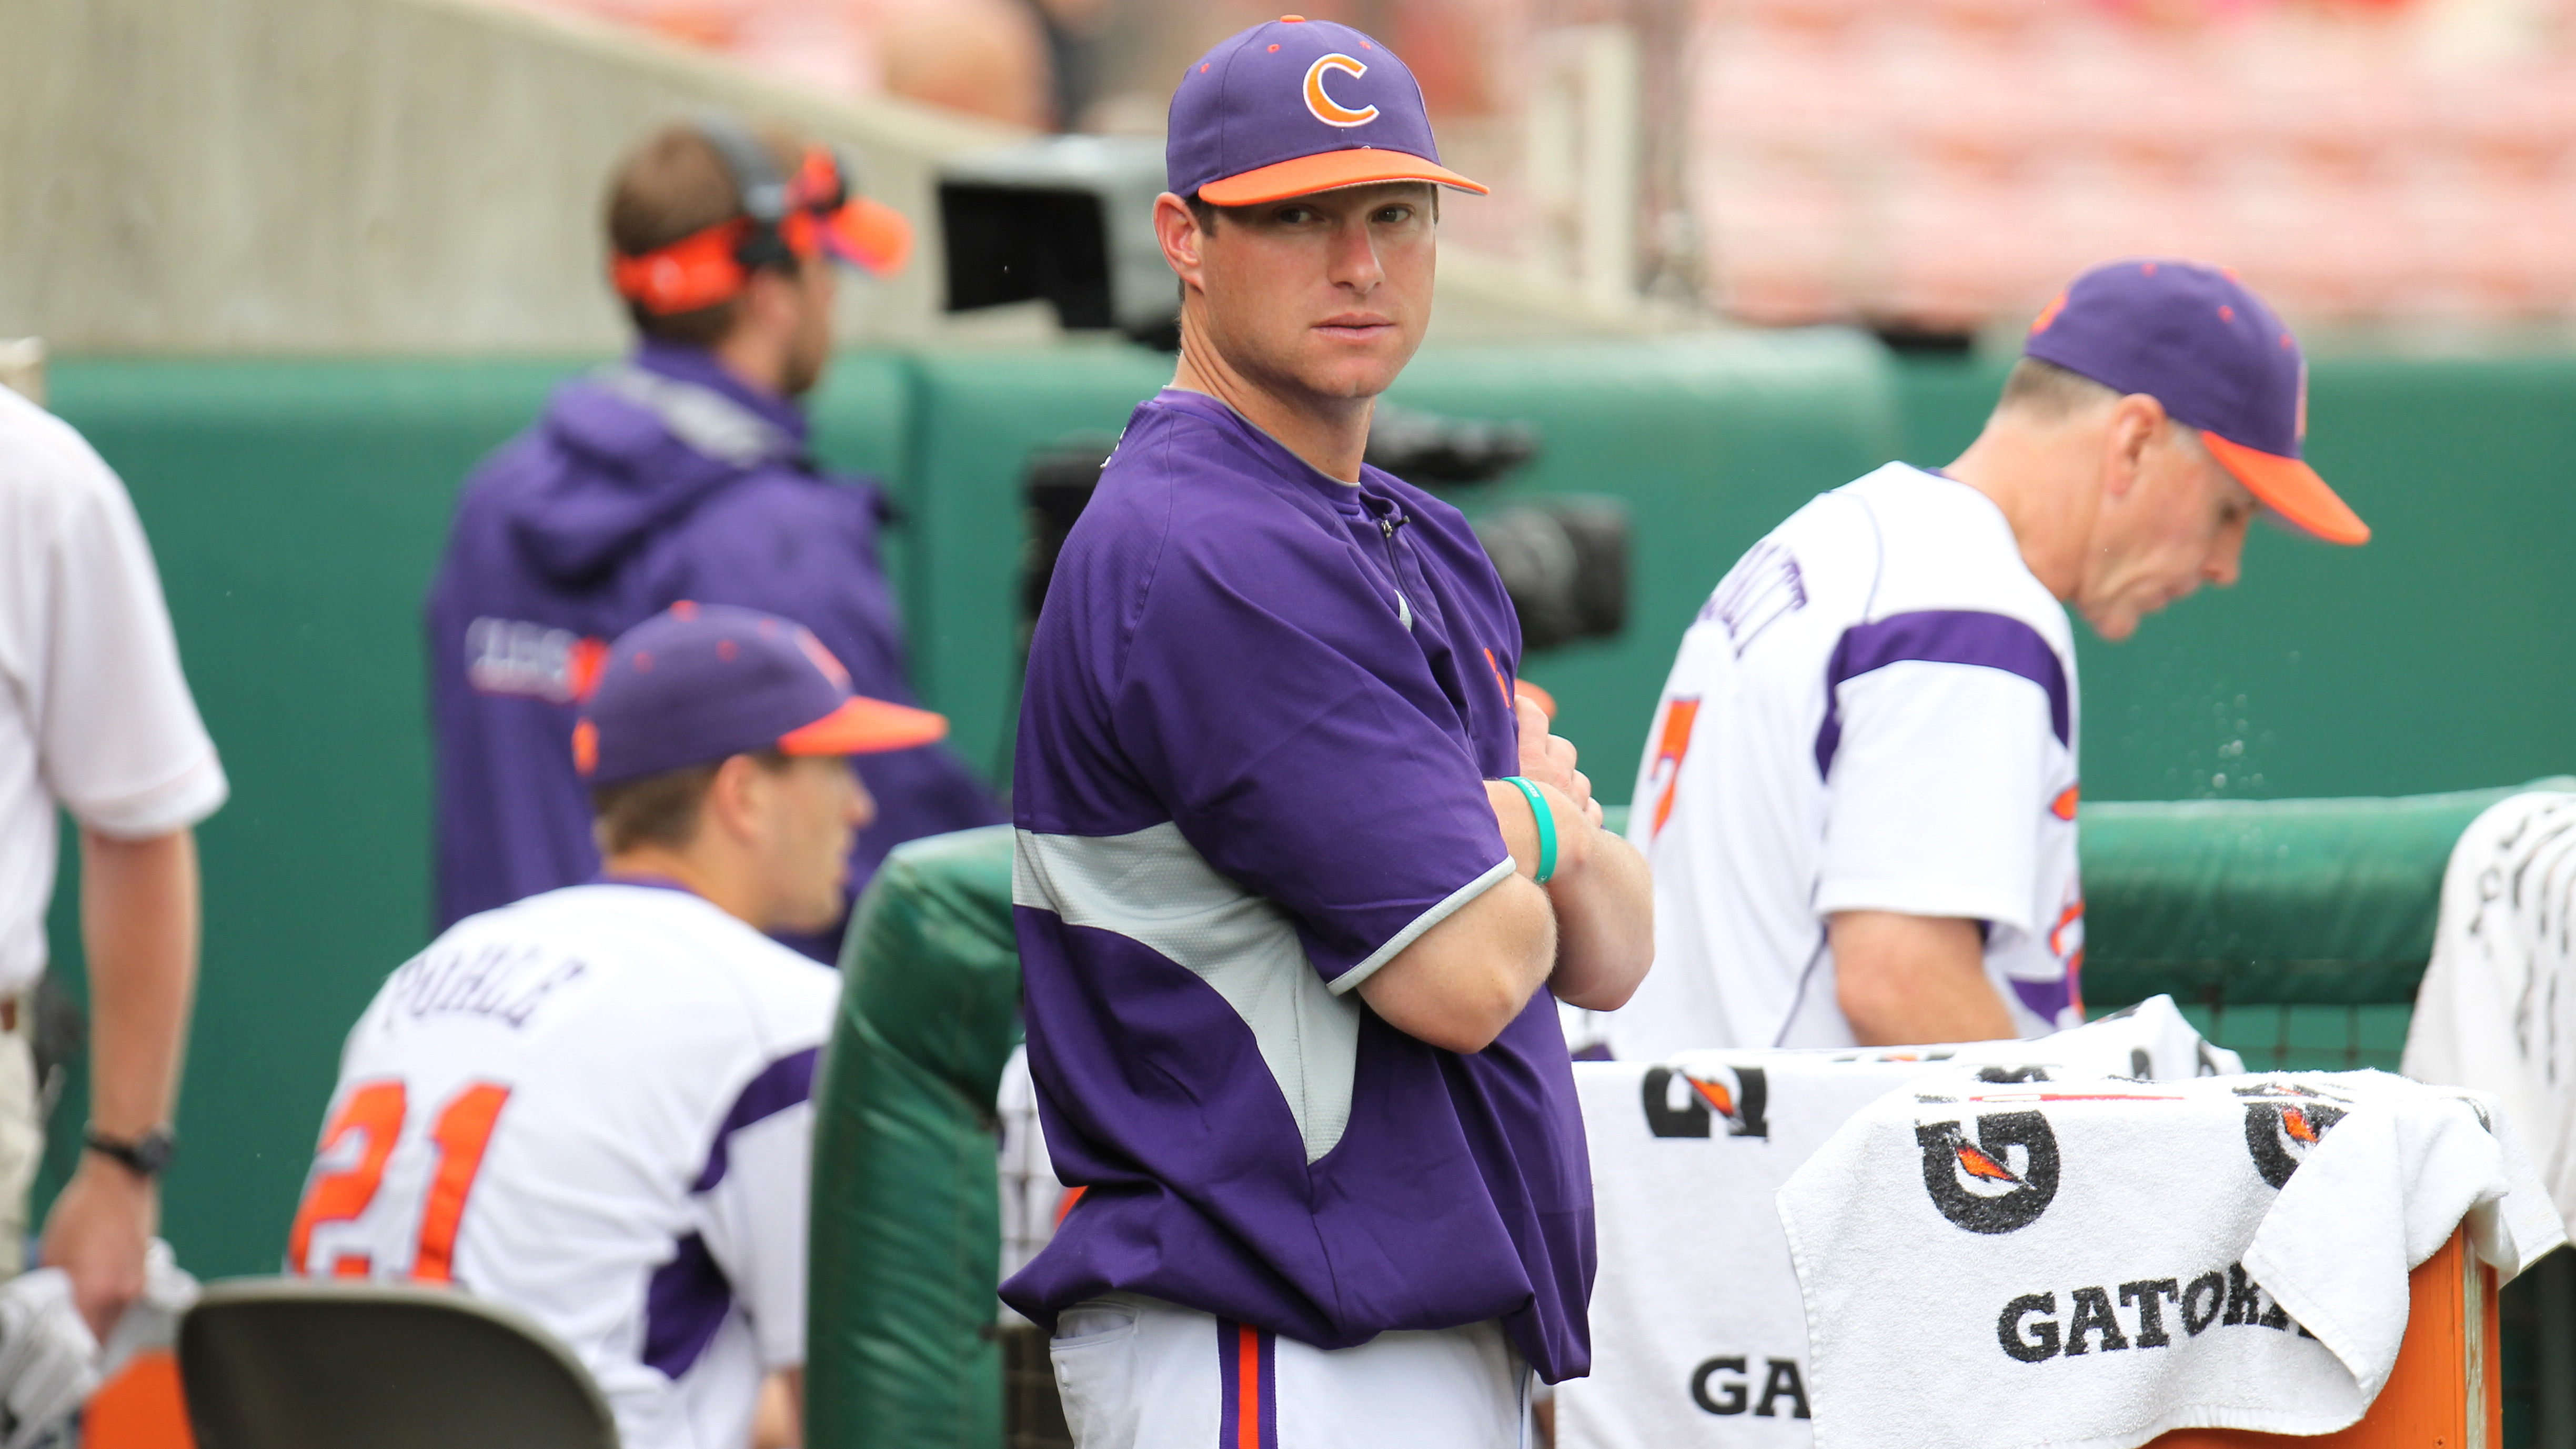 Bradley LeCroy Named a Top-10 Assistant Coach Nationally By Baseball America